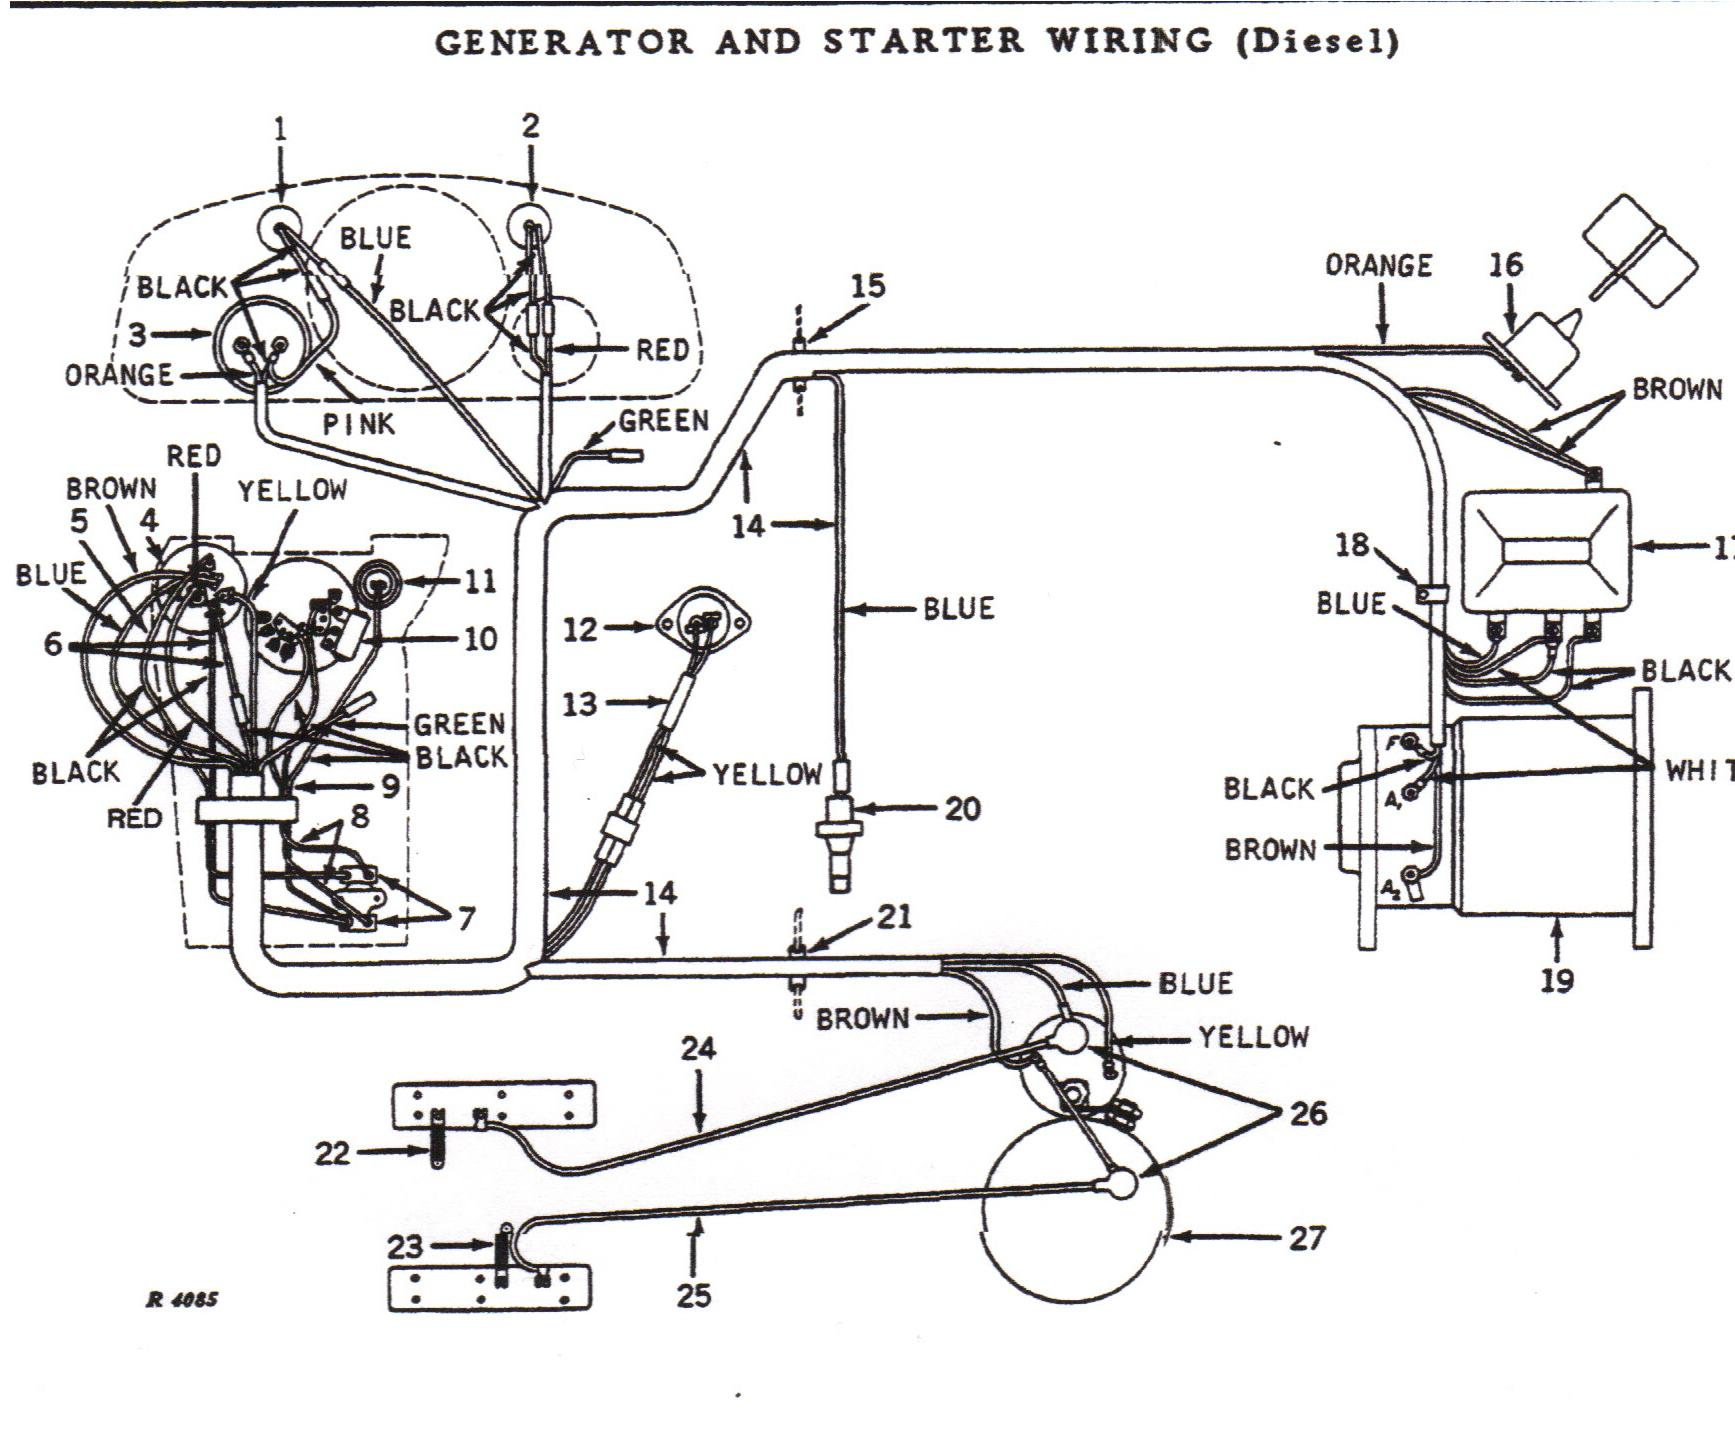 wiring diagram for john deere 2040 tractor i have a 1963 jd 3010 ag tractor i have put a new